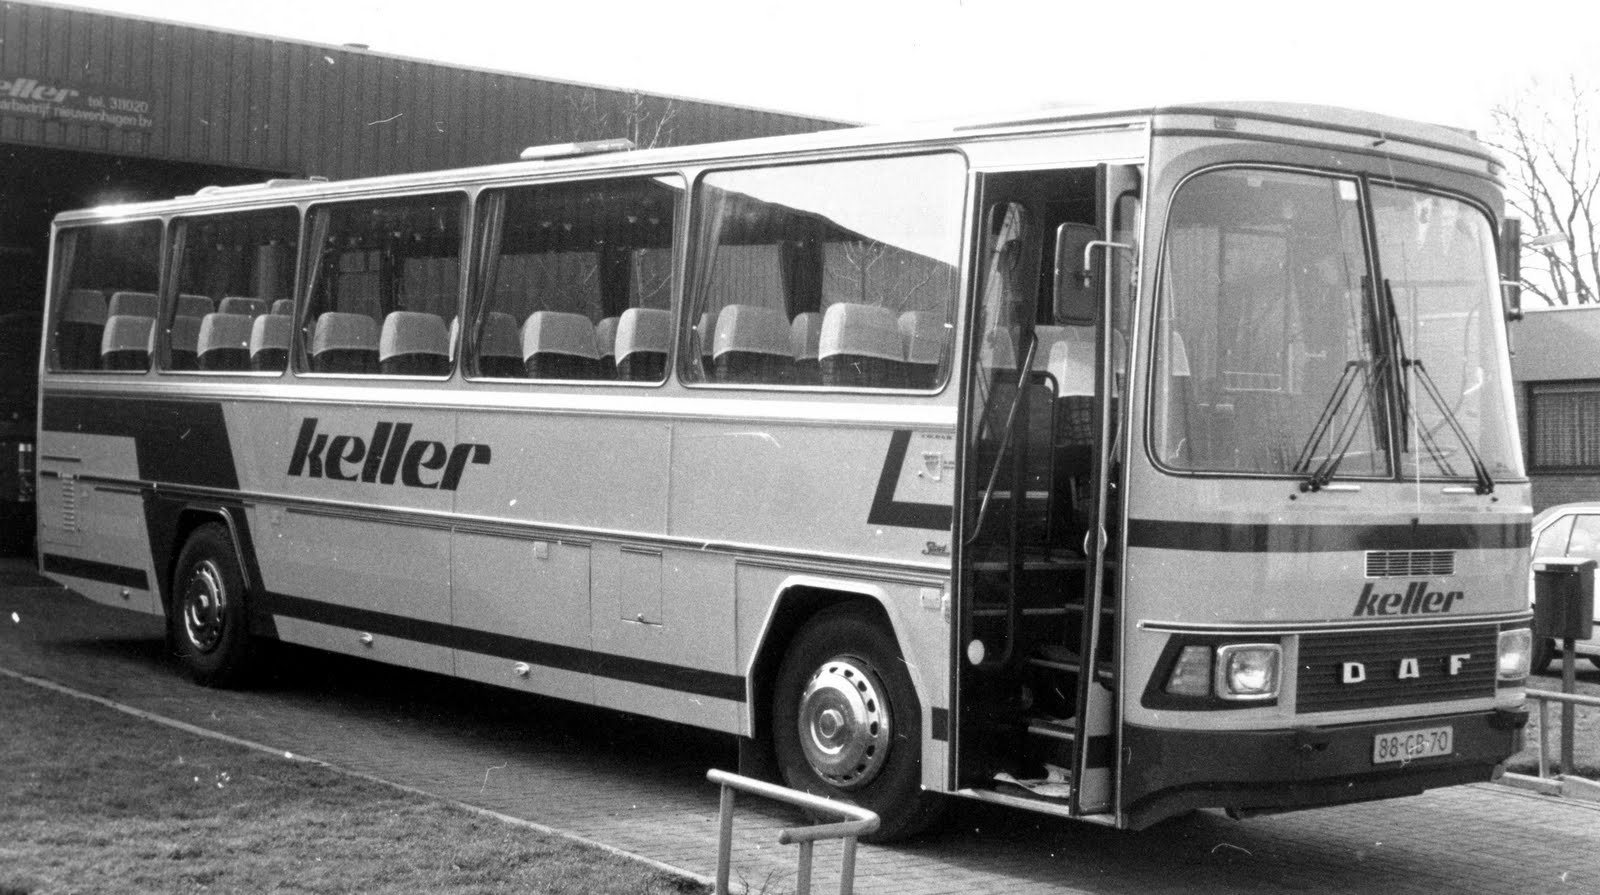 Keller 1979 17 DAF Smit Joure